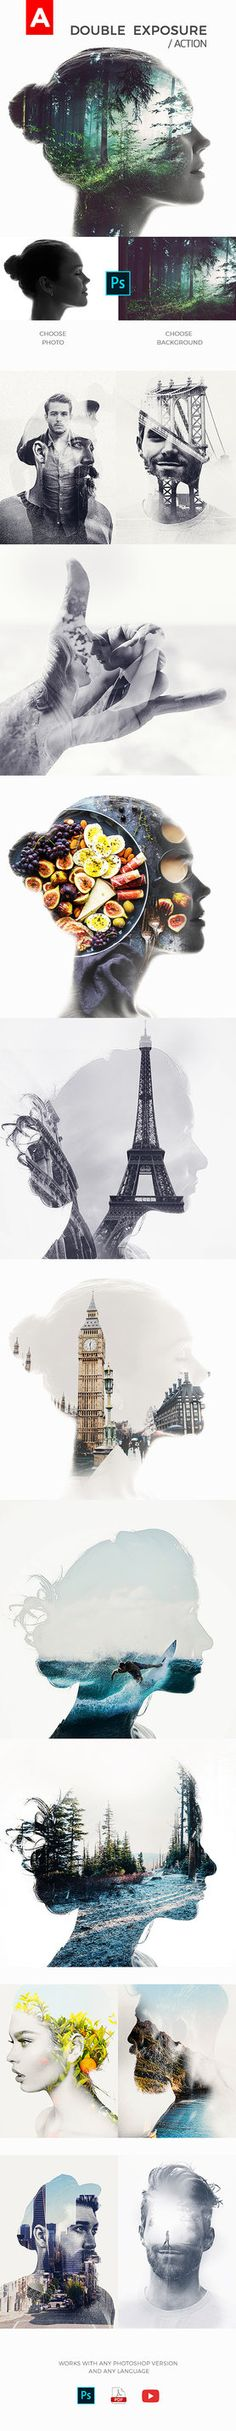 DOWNLOAD: goo.gl/rebNpGDouble Exposure Action – This double exposure action is a photoshop action which uses uses 2 photographs and blends them in to create a very nice doubl...